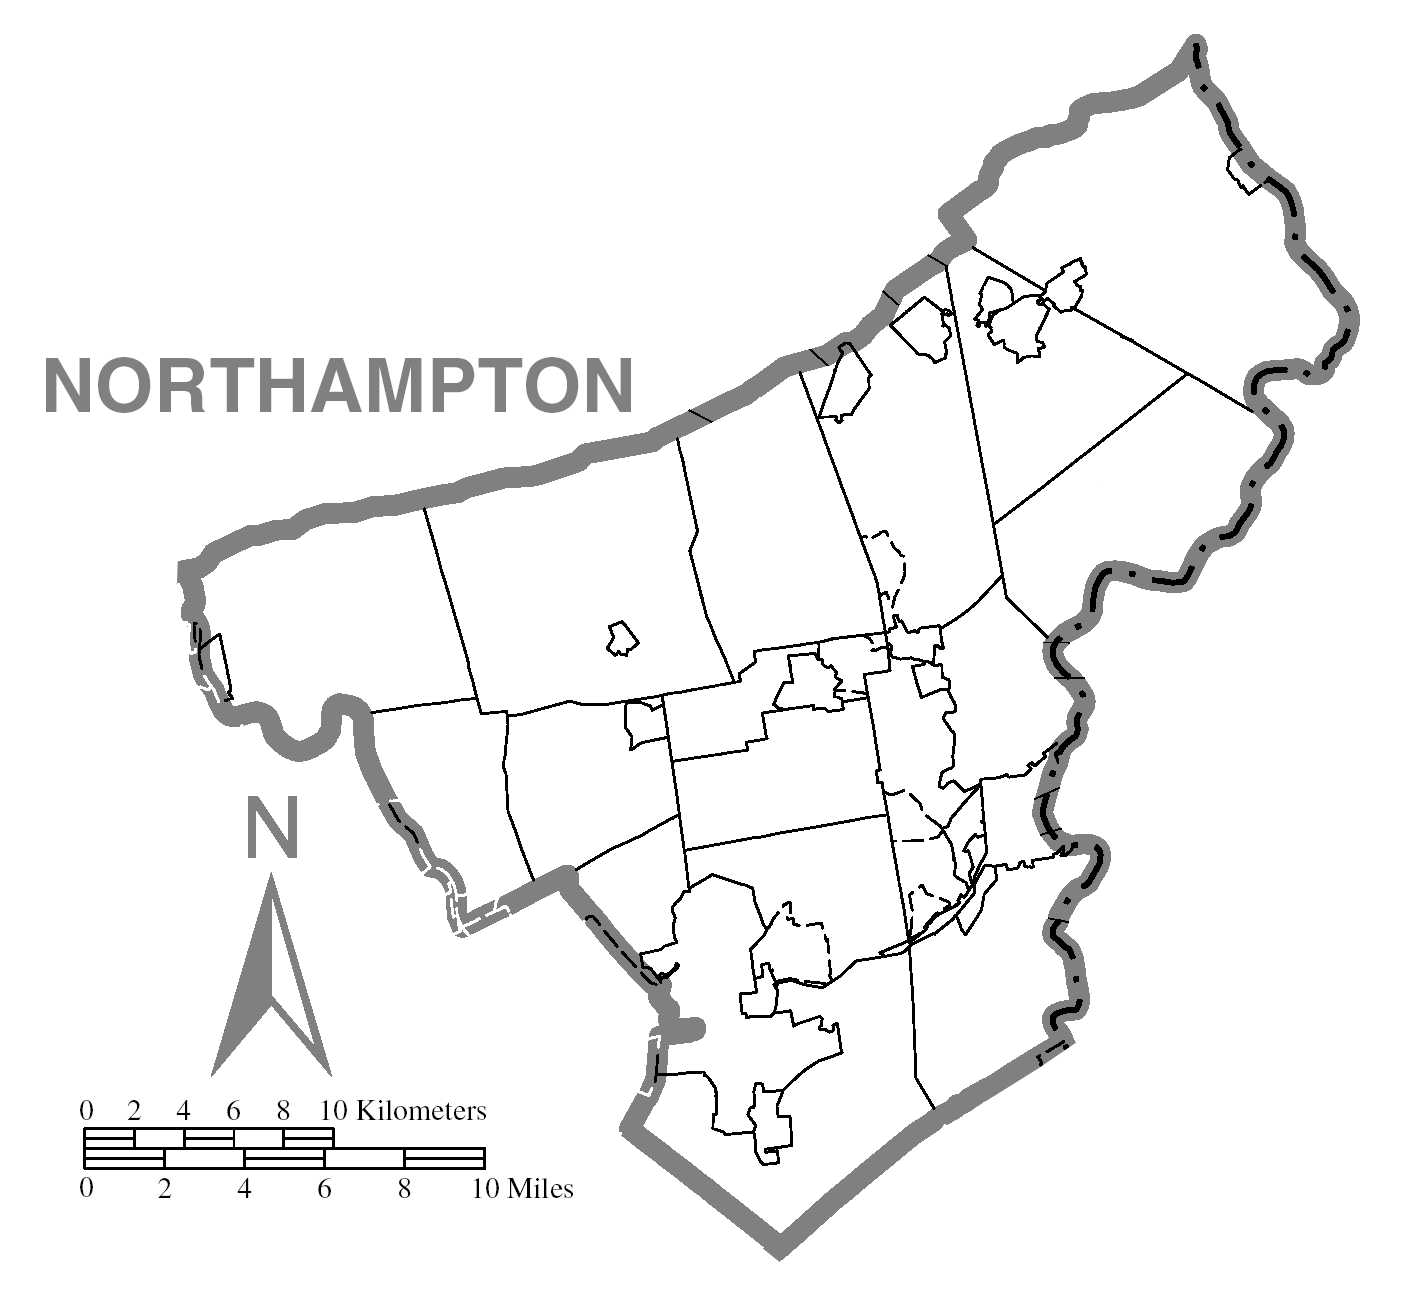 File:Map of Northampton County, Pennsylvania No Text.pngnorthampton county